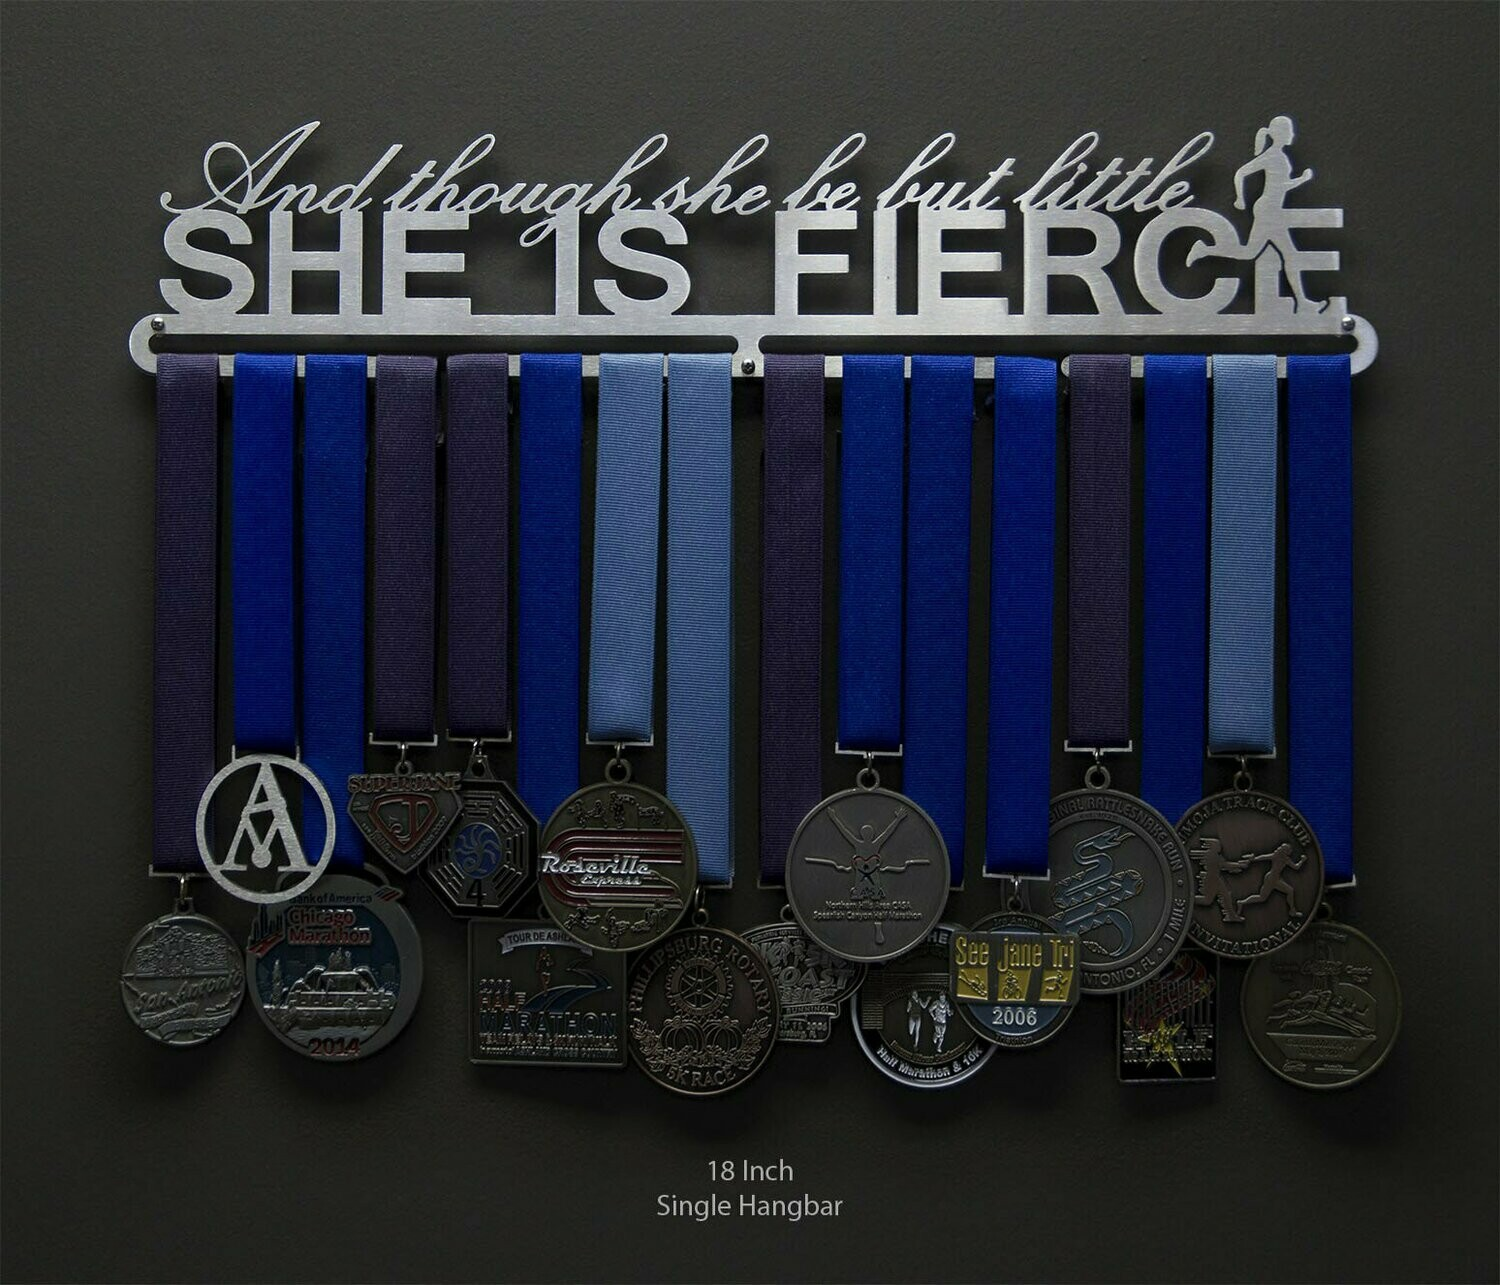 Medal Hanger And Though She Be But Little, She Is Fierce